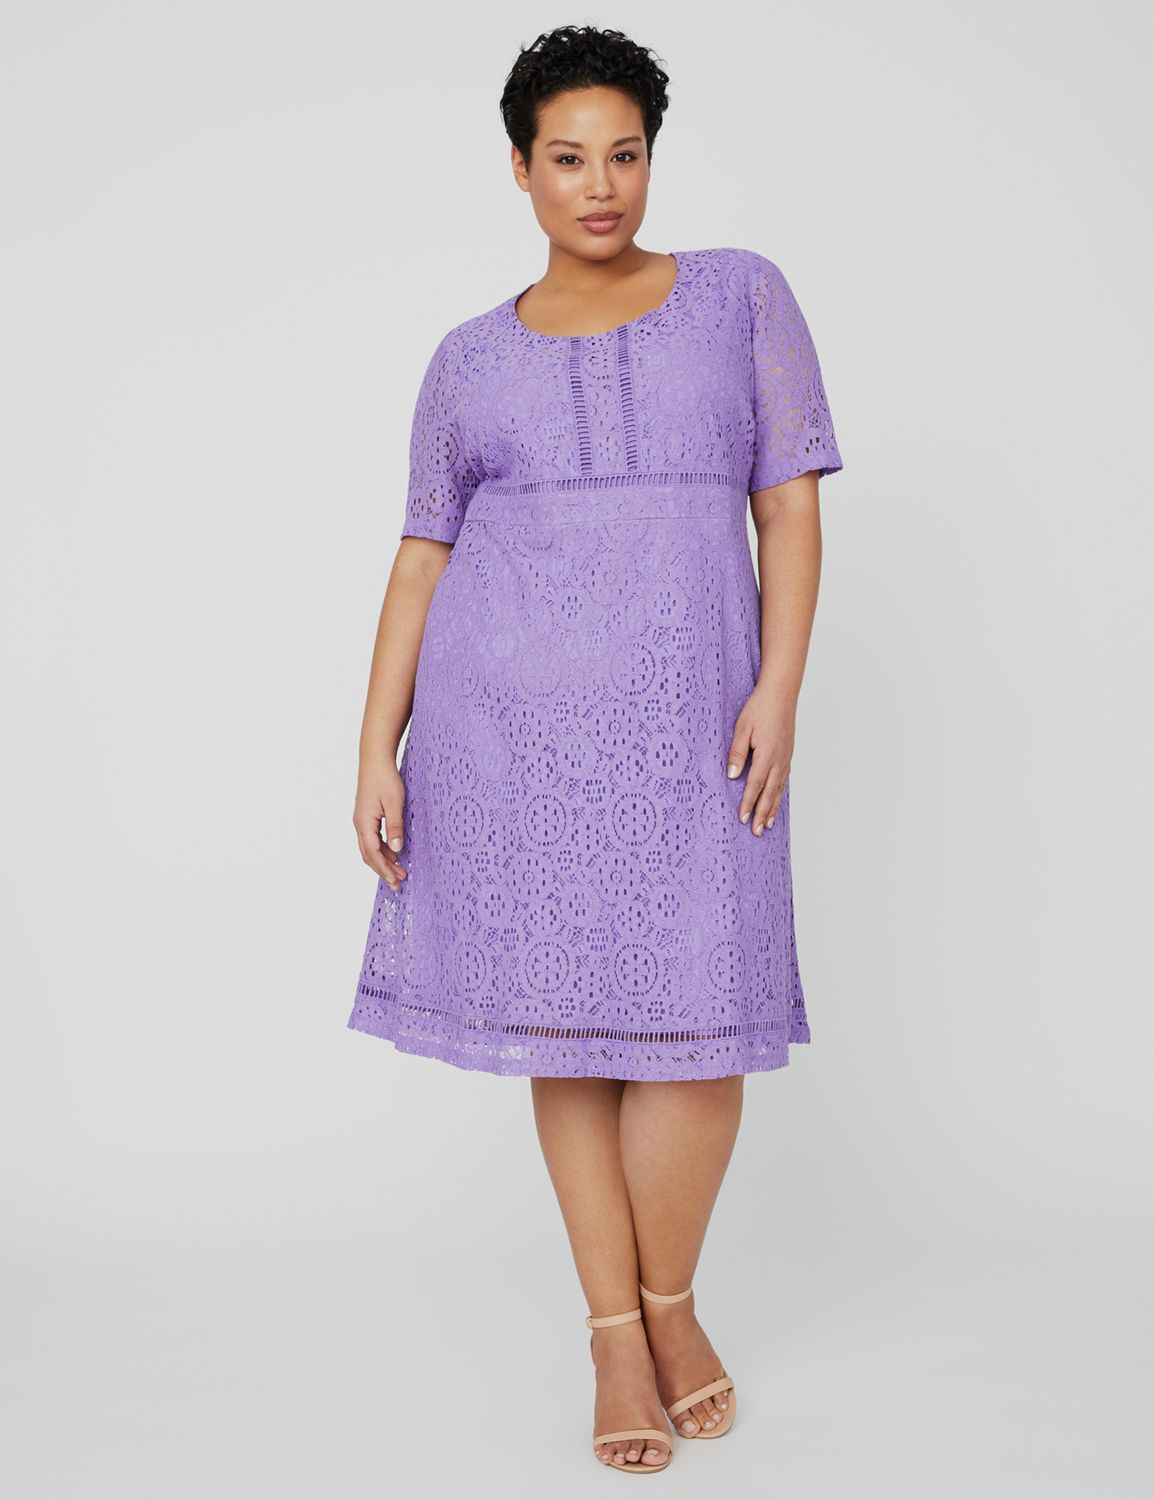 Violet Lace Dress 1091036 A Line Lace Dress with Trim MP-300100566